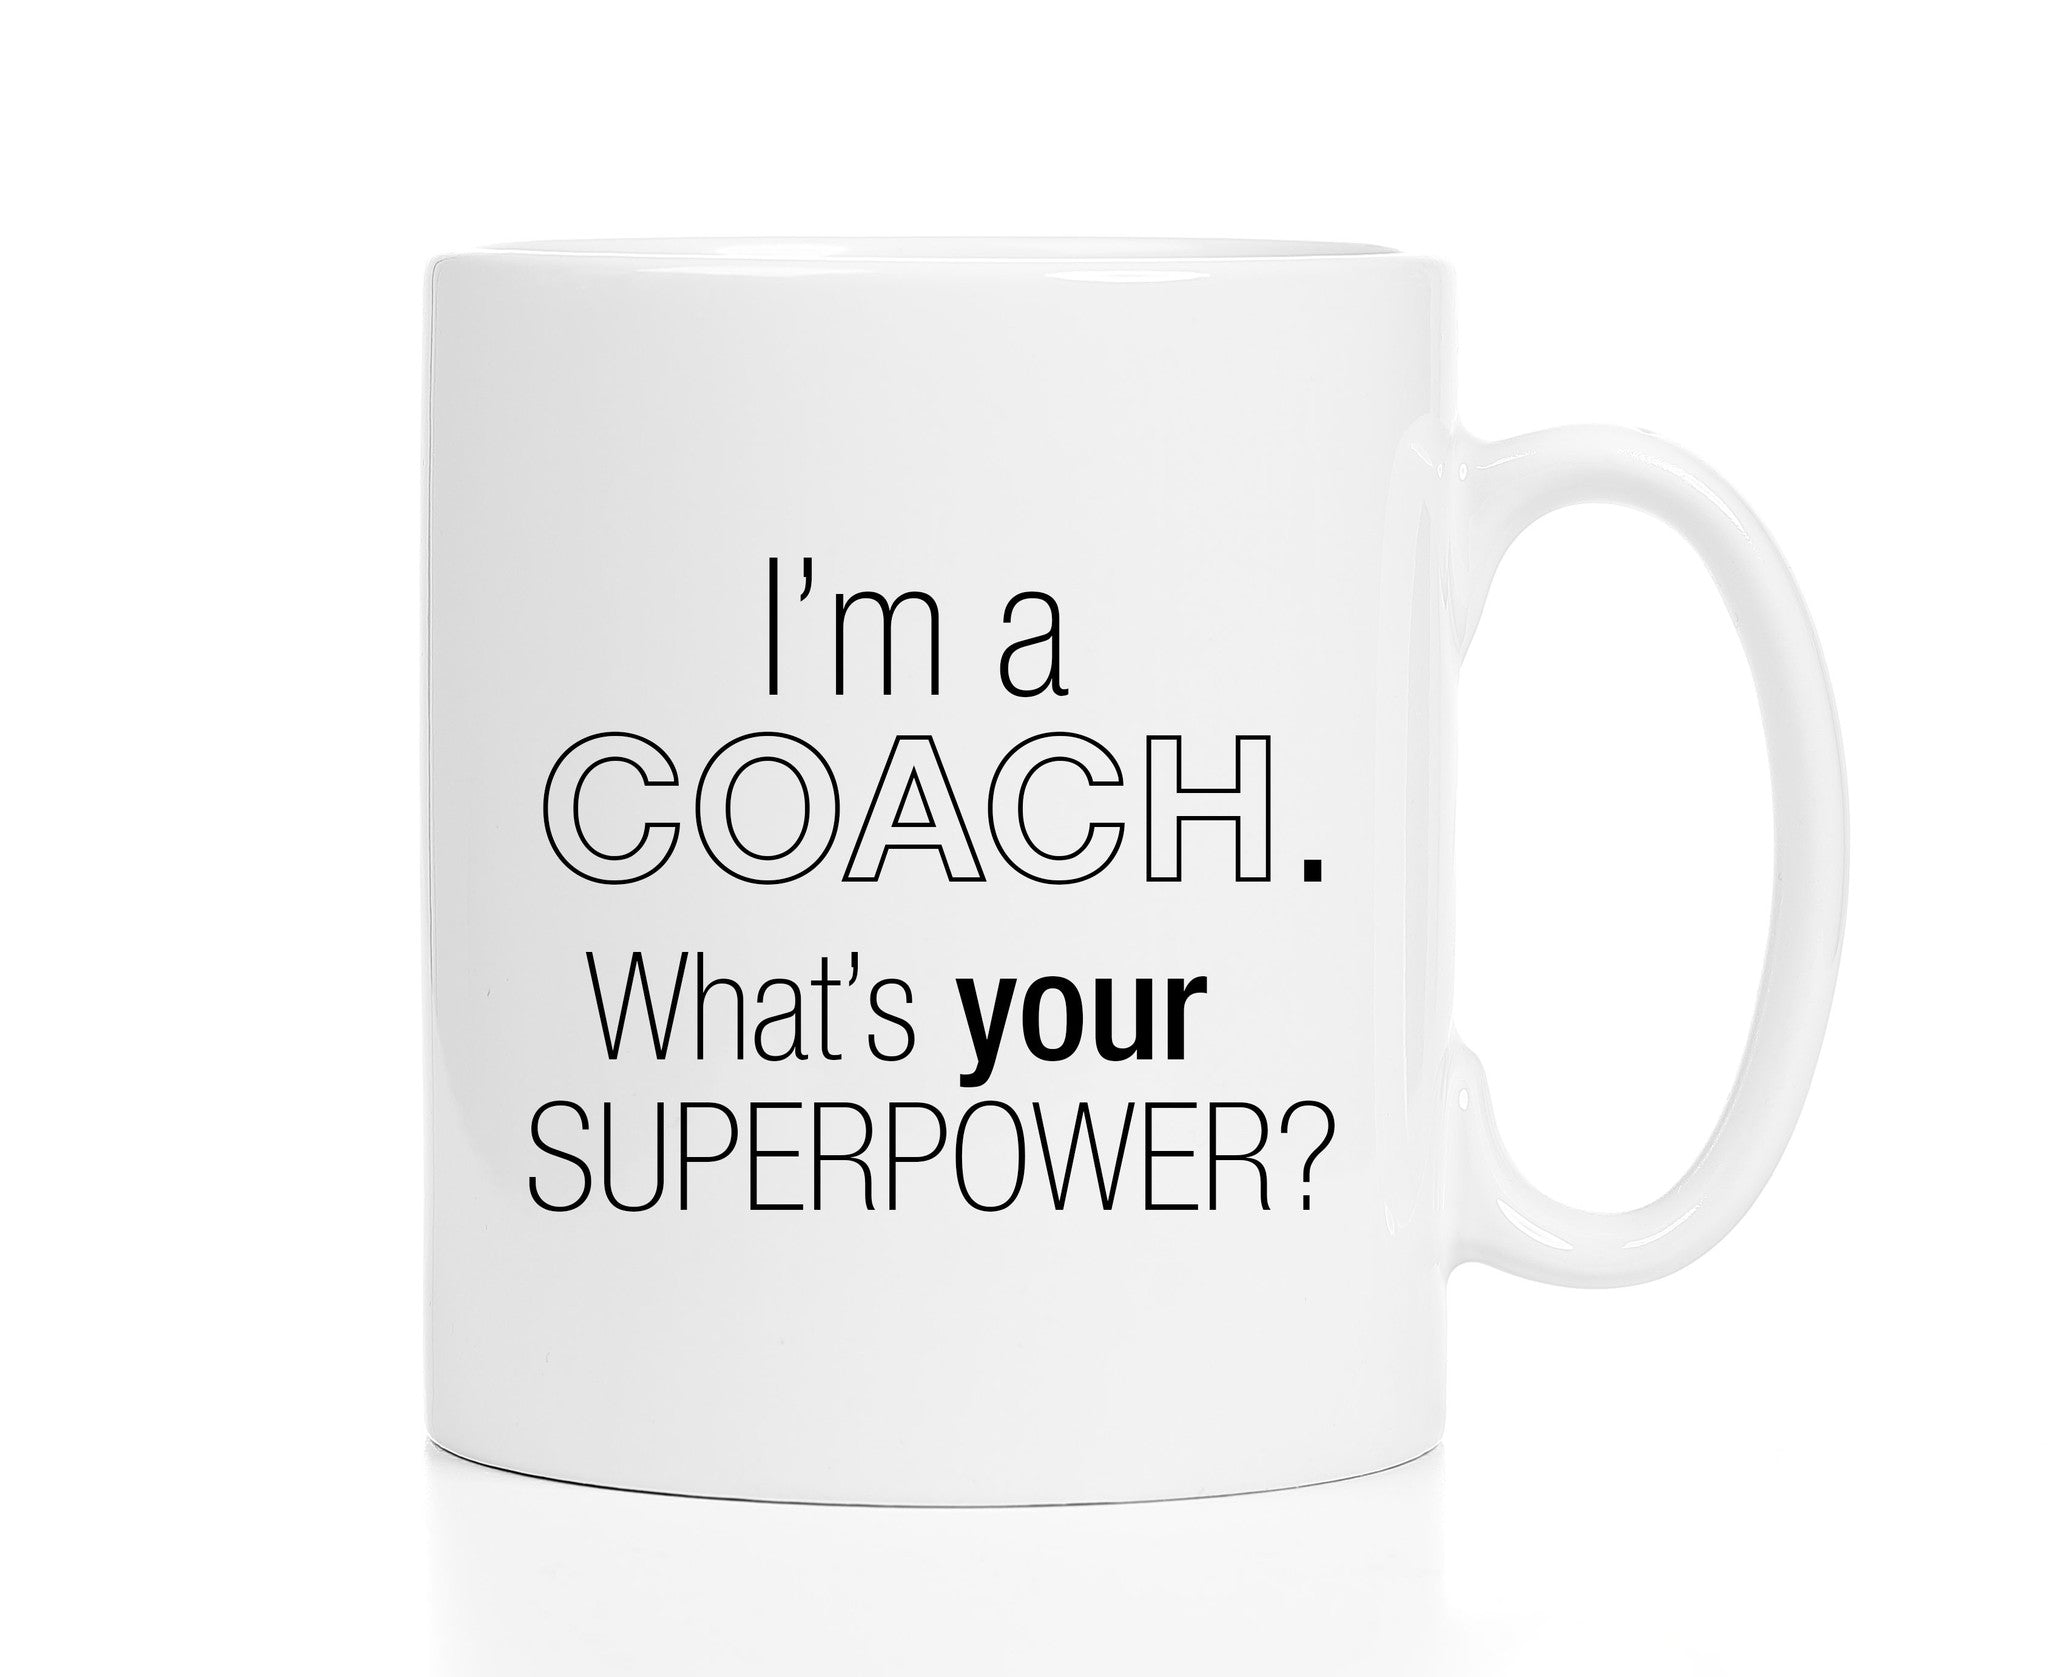 I'm a Coach, What's Your Superpower? Mug